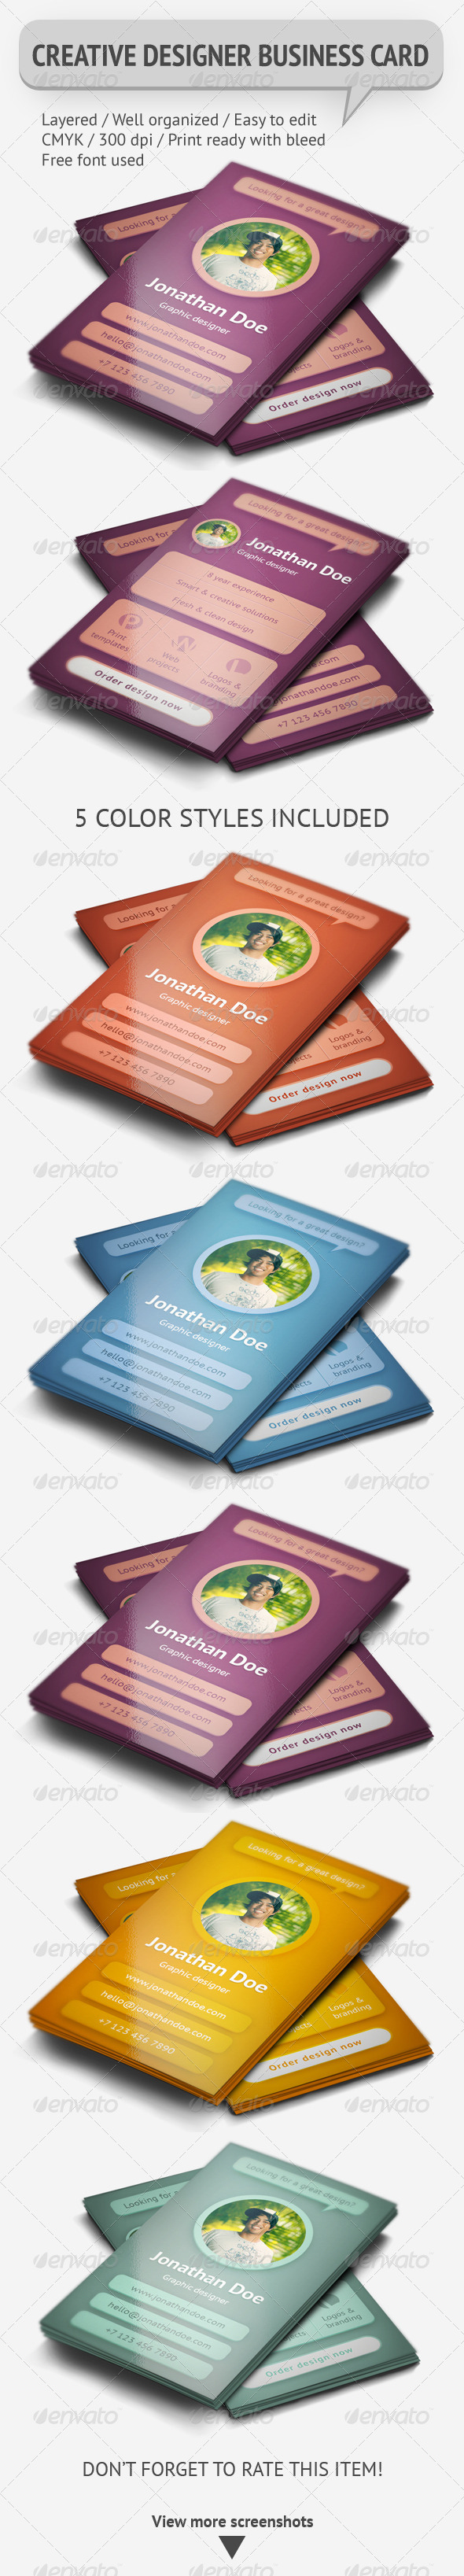 Creative Graphic Designer Business Card - Creative Business Cards